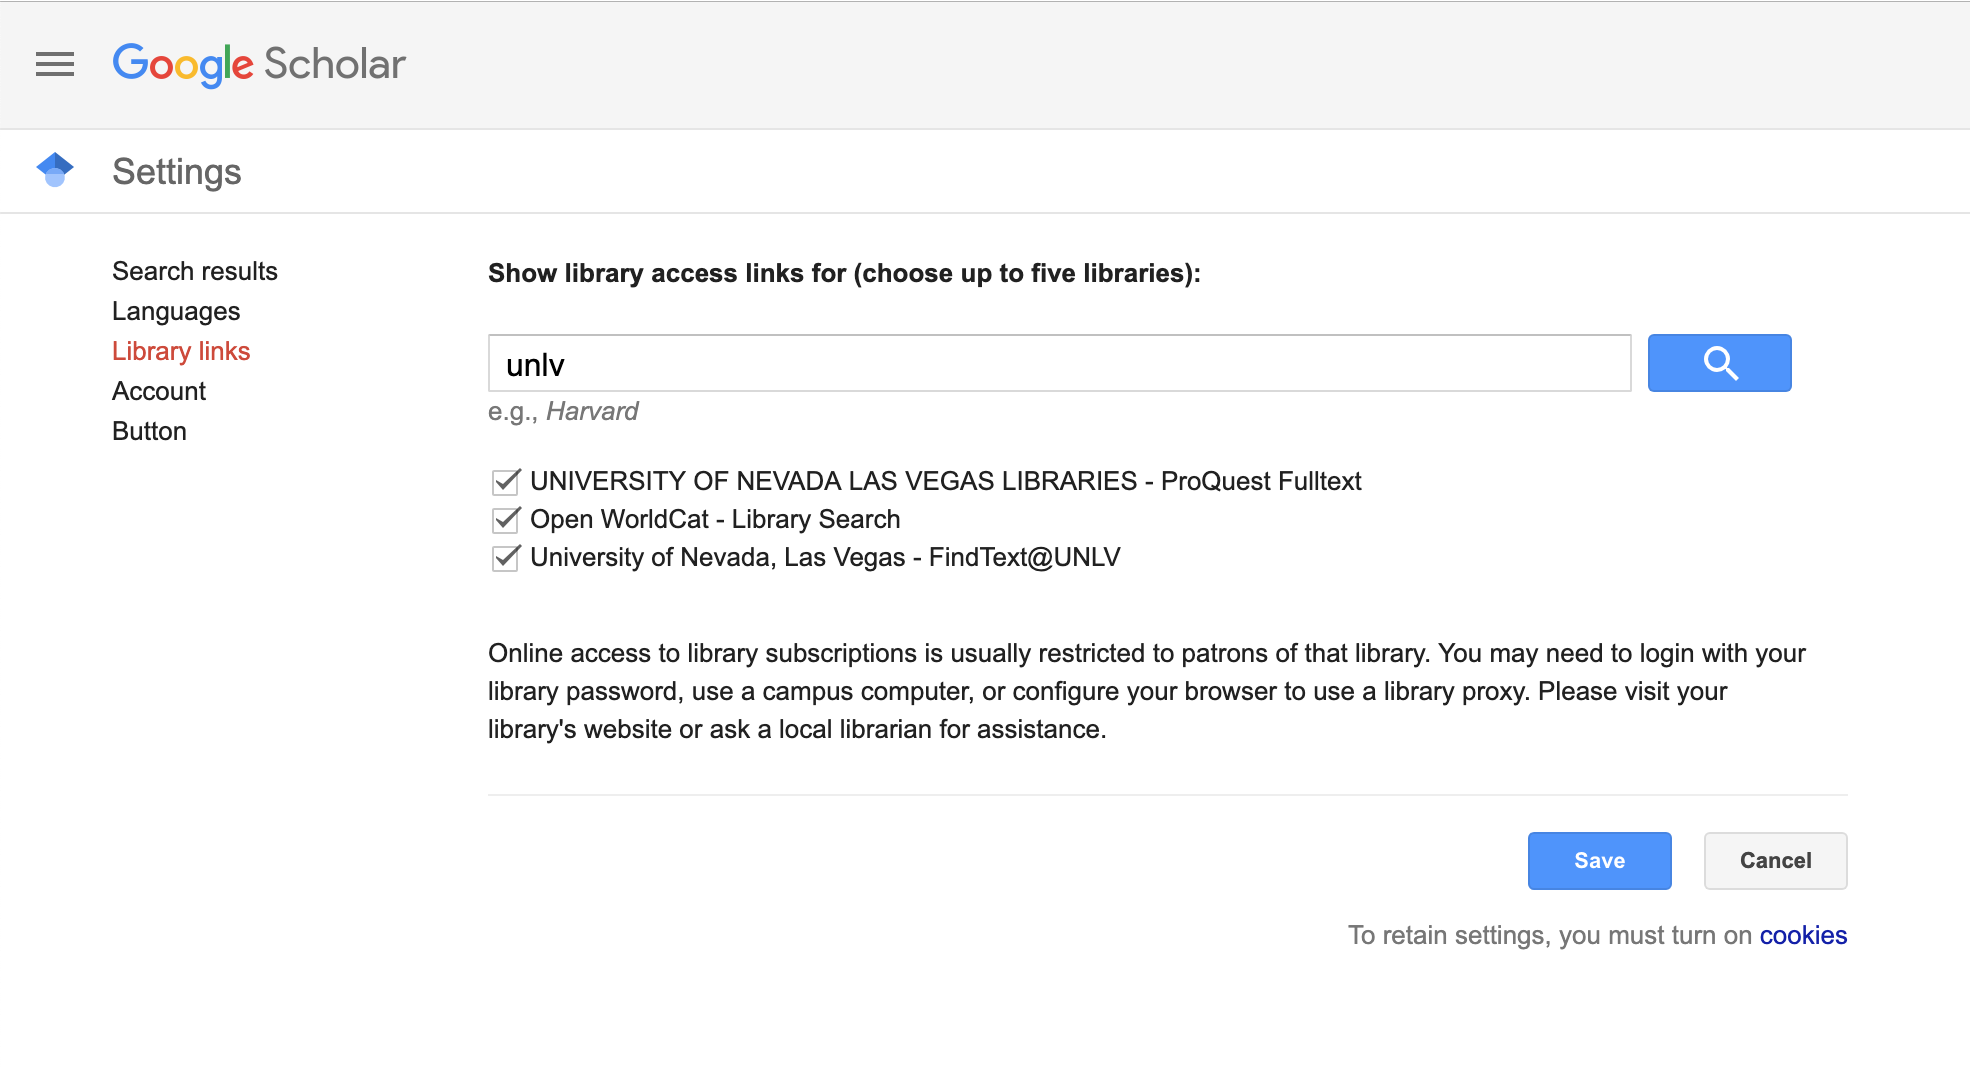 Google Scholar library links preferences